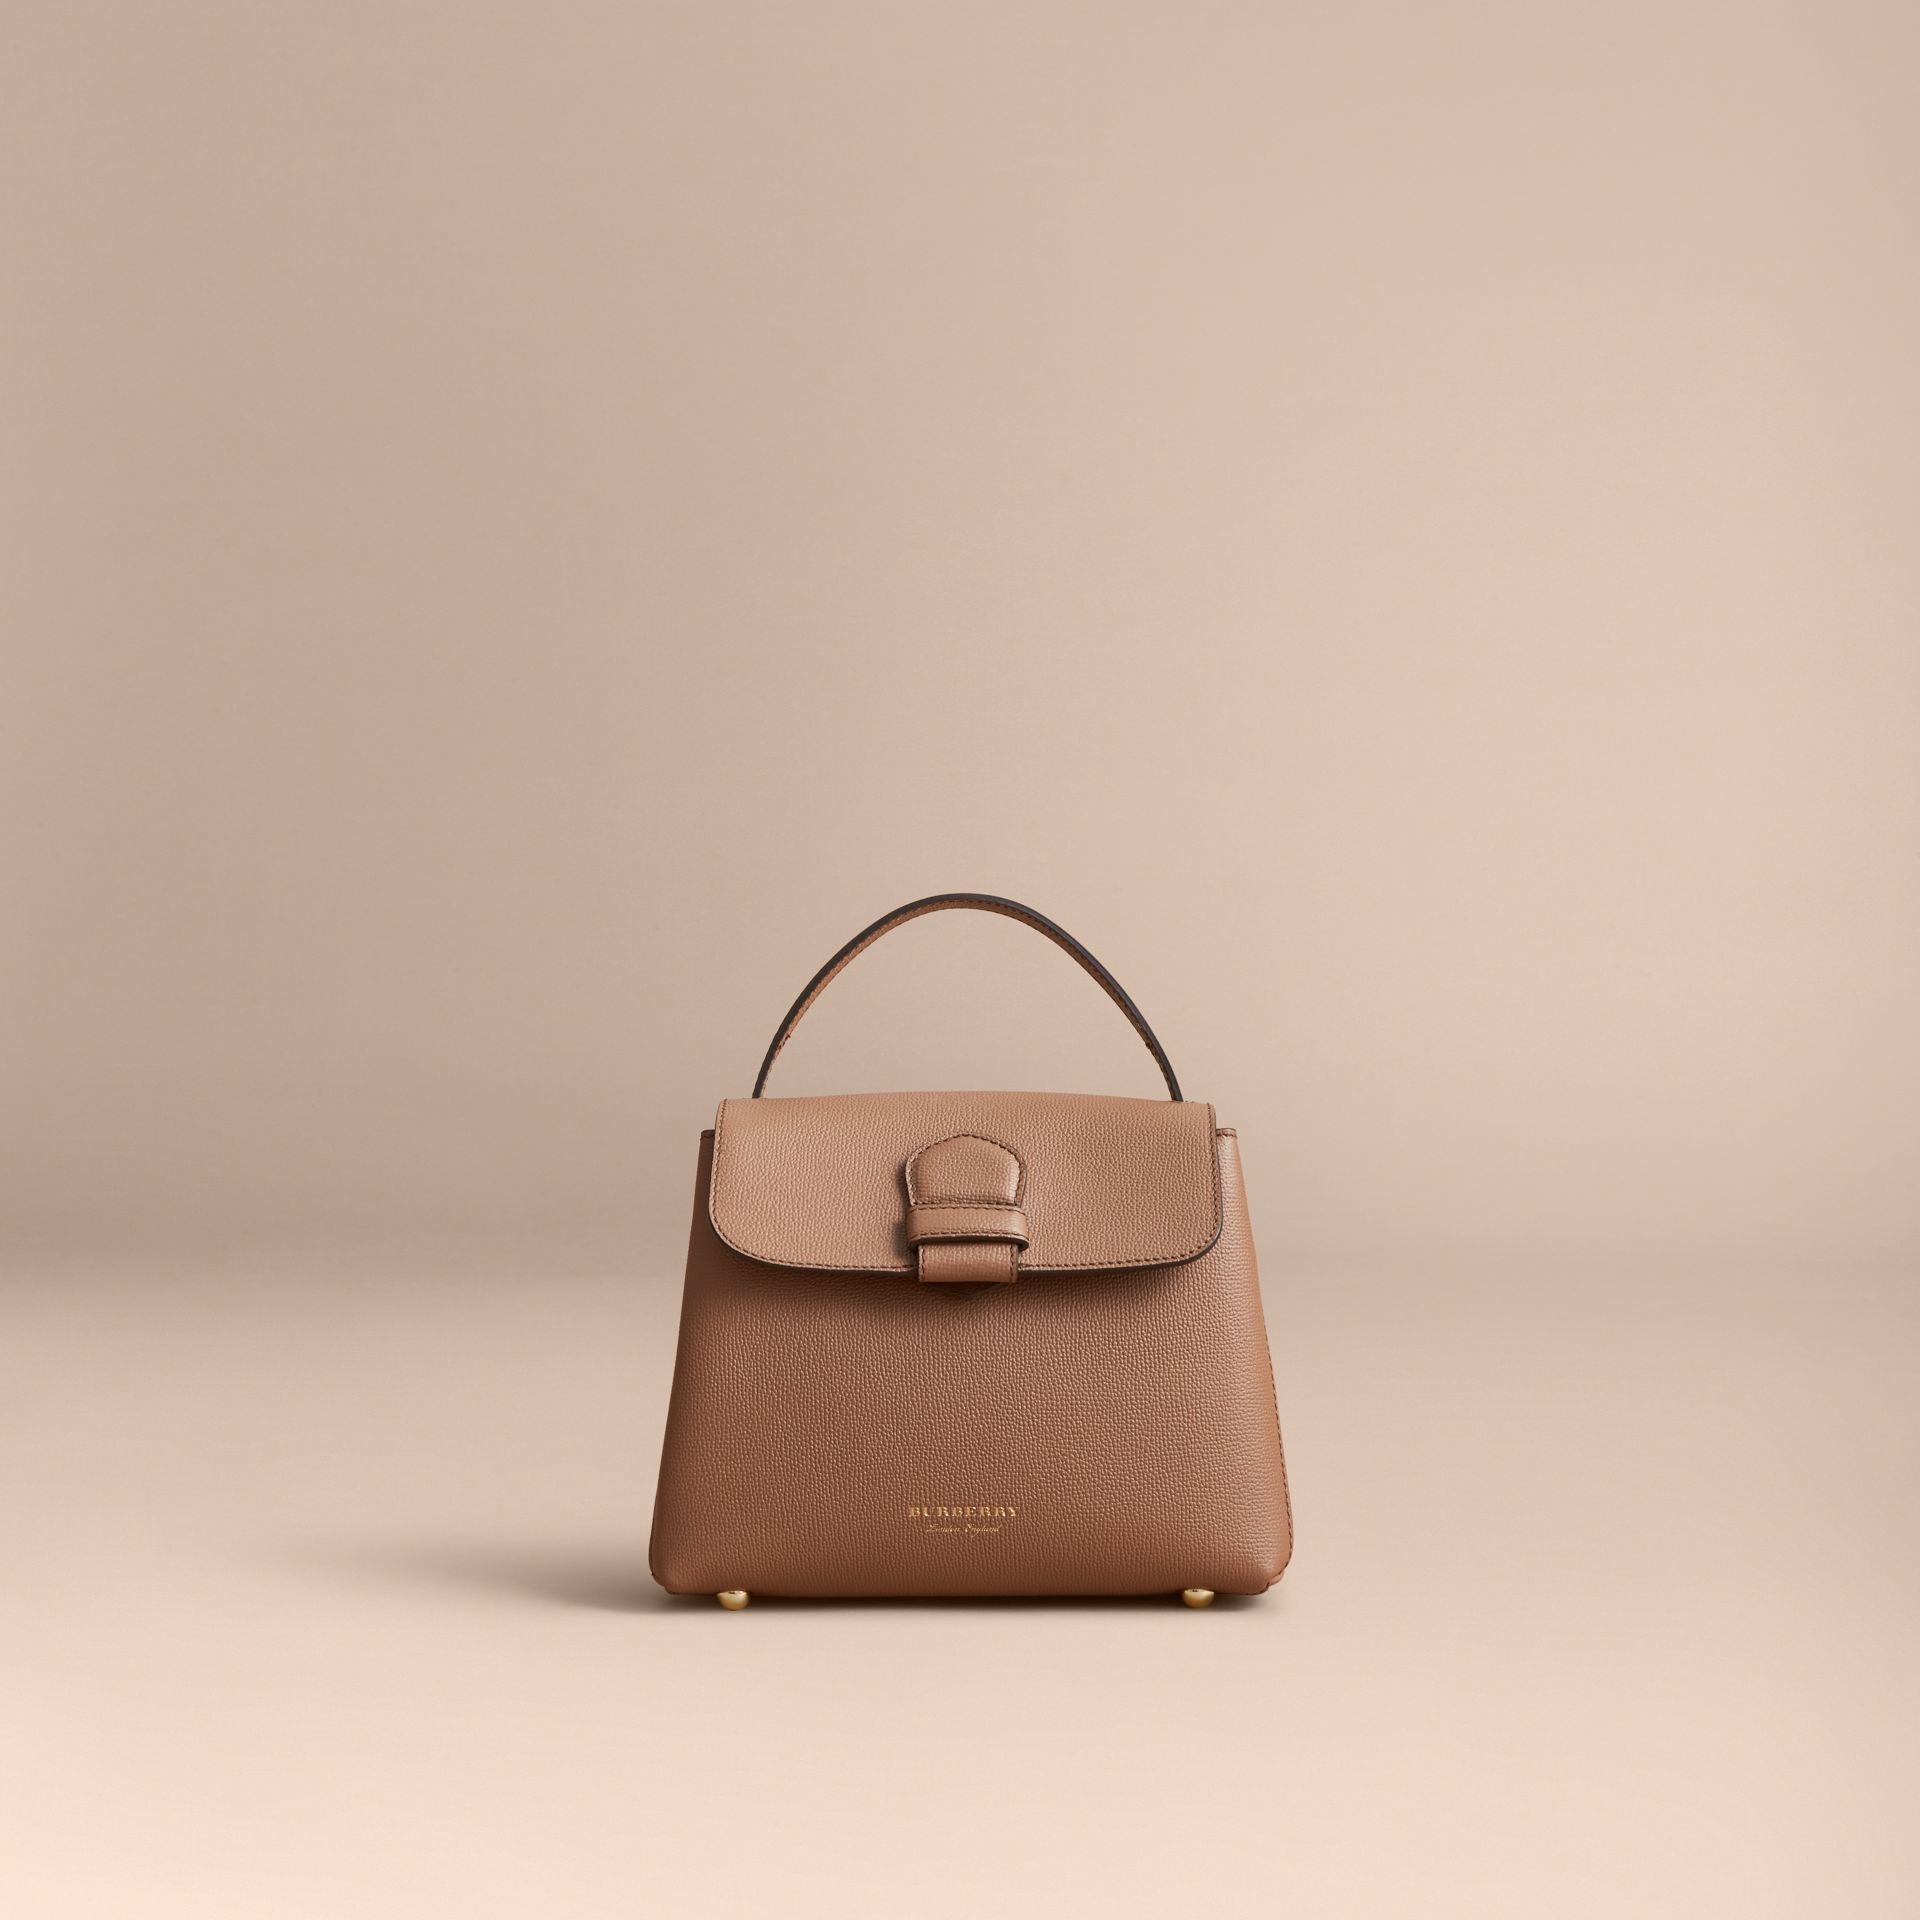 Small Grainy Leather and House Check Tote Bag in Dark Sand - Women | Burberry United Kingdom - gallery image 5